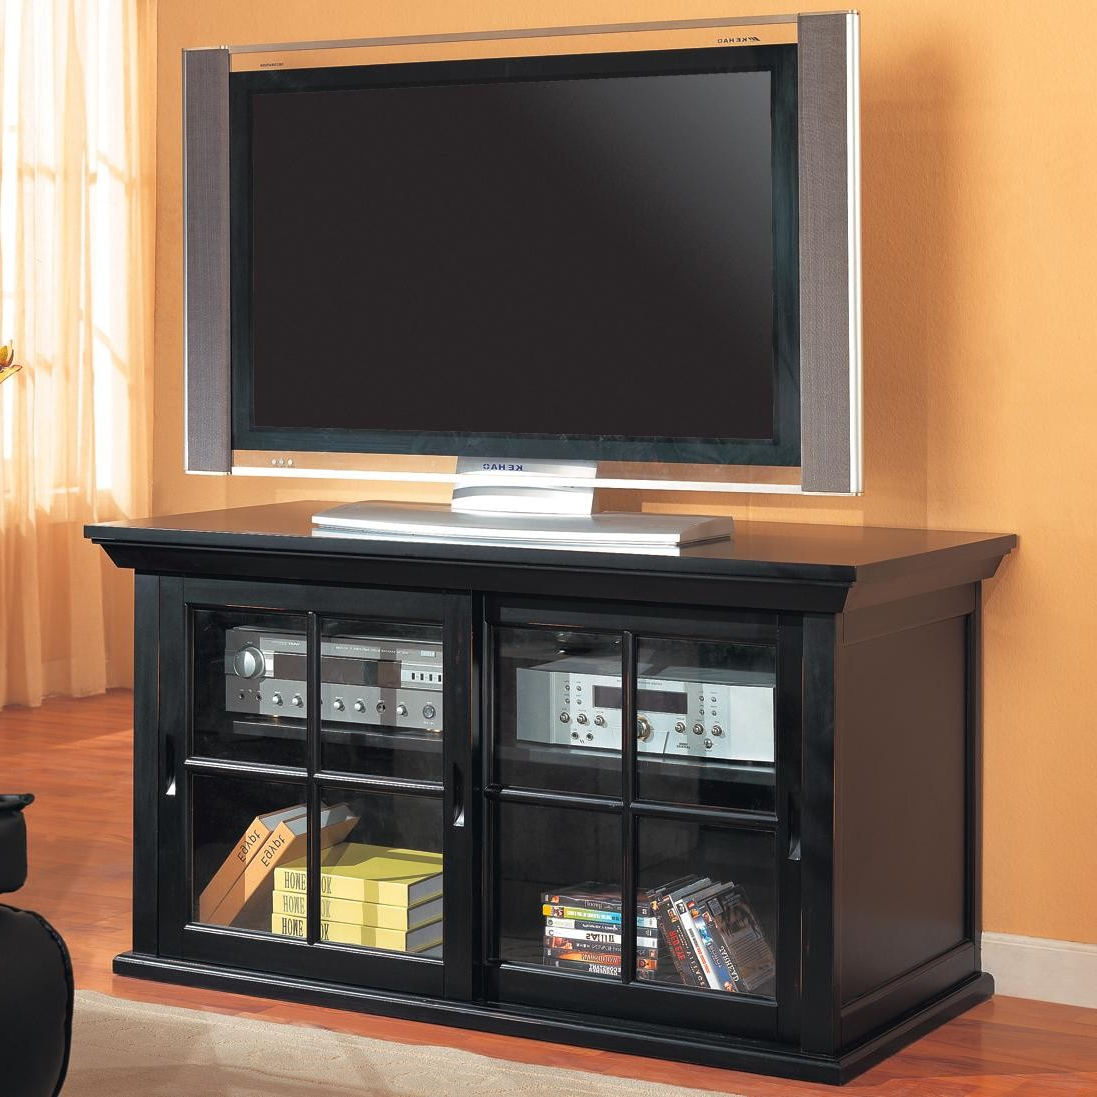 Small Tv Cabinet With Glass Tv Cabinet With Glass Doors Bathroom Within Most Recently Released Black Tv Stand With Glass Doors (Gallery 3 of 20)